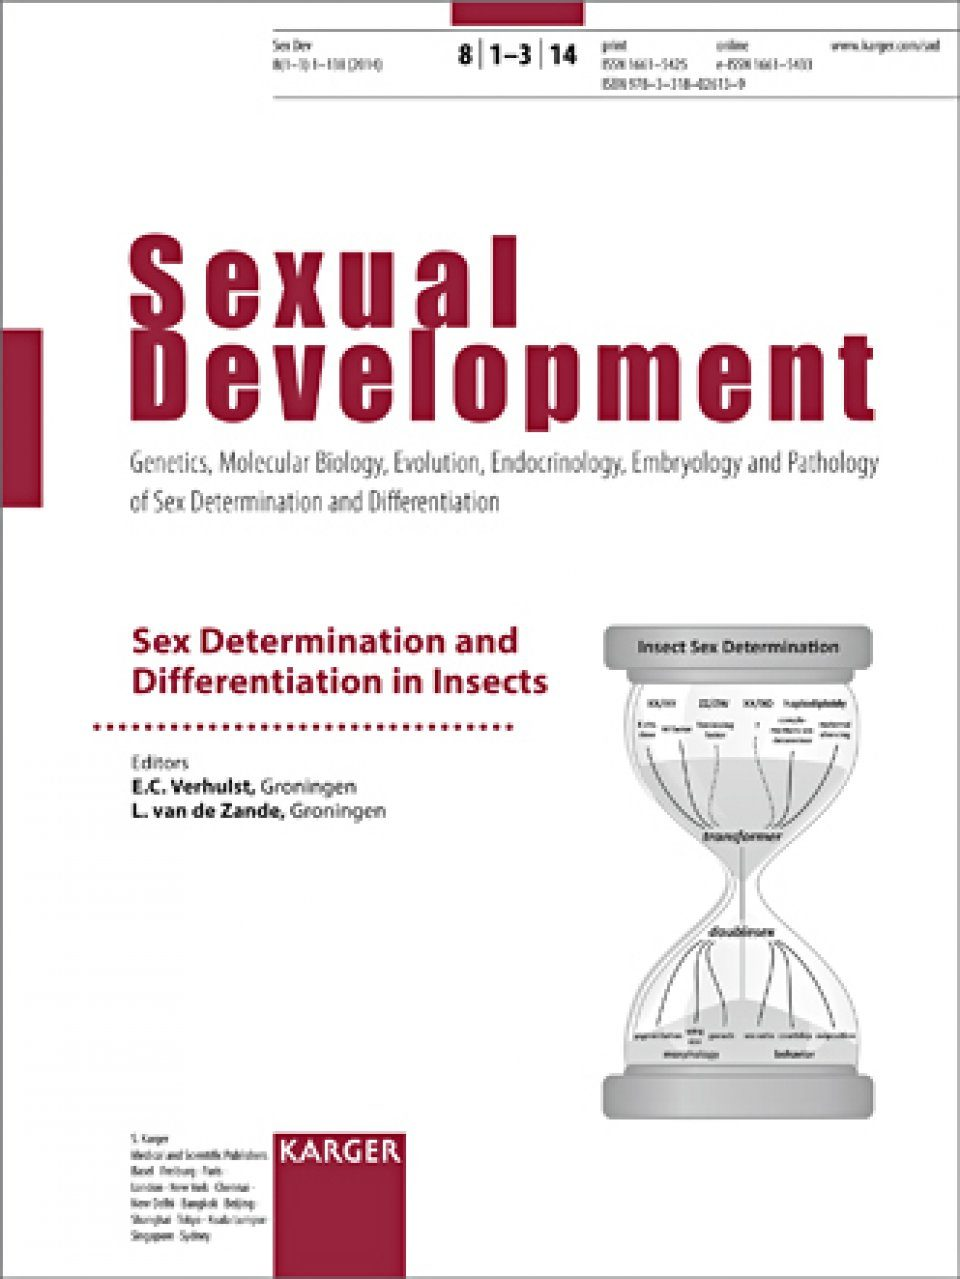 Sex Determination and Differentiation in Insects